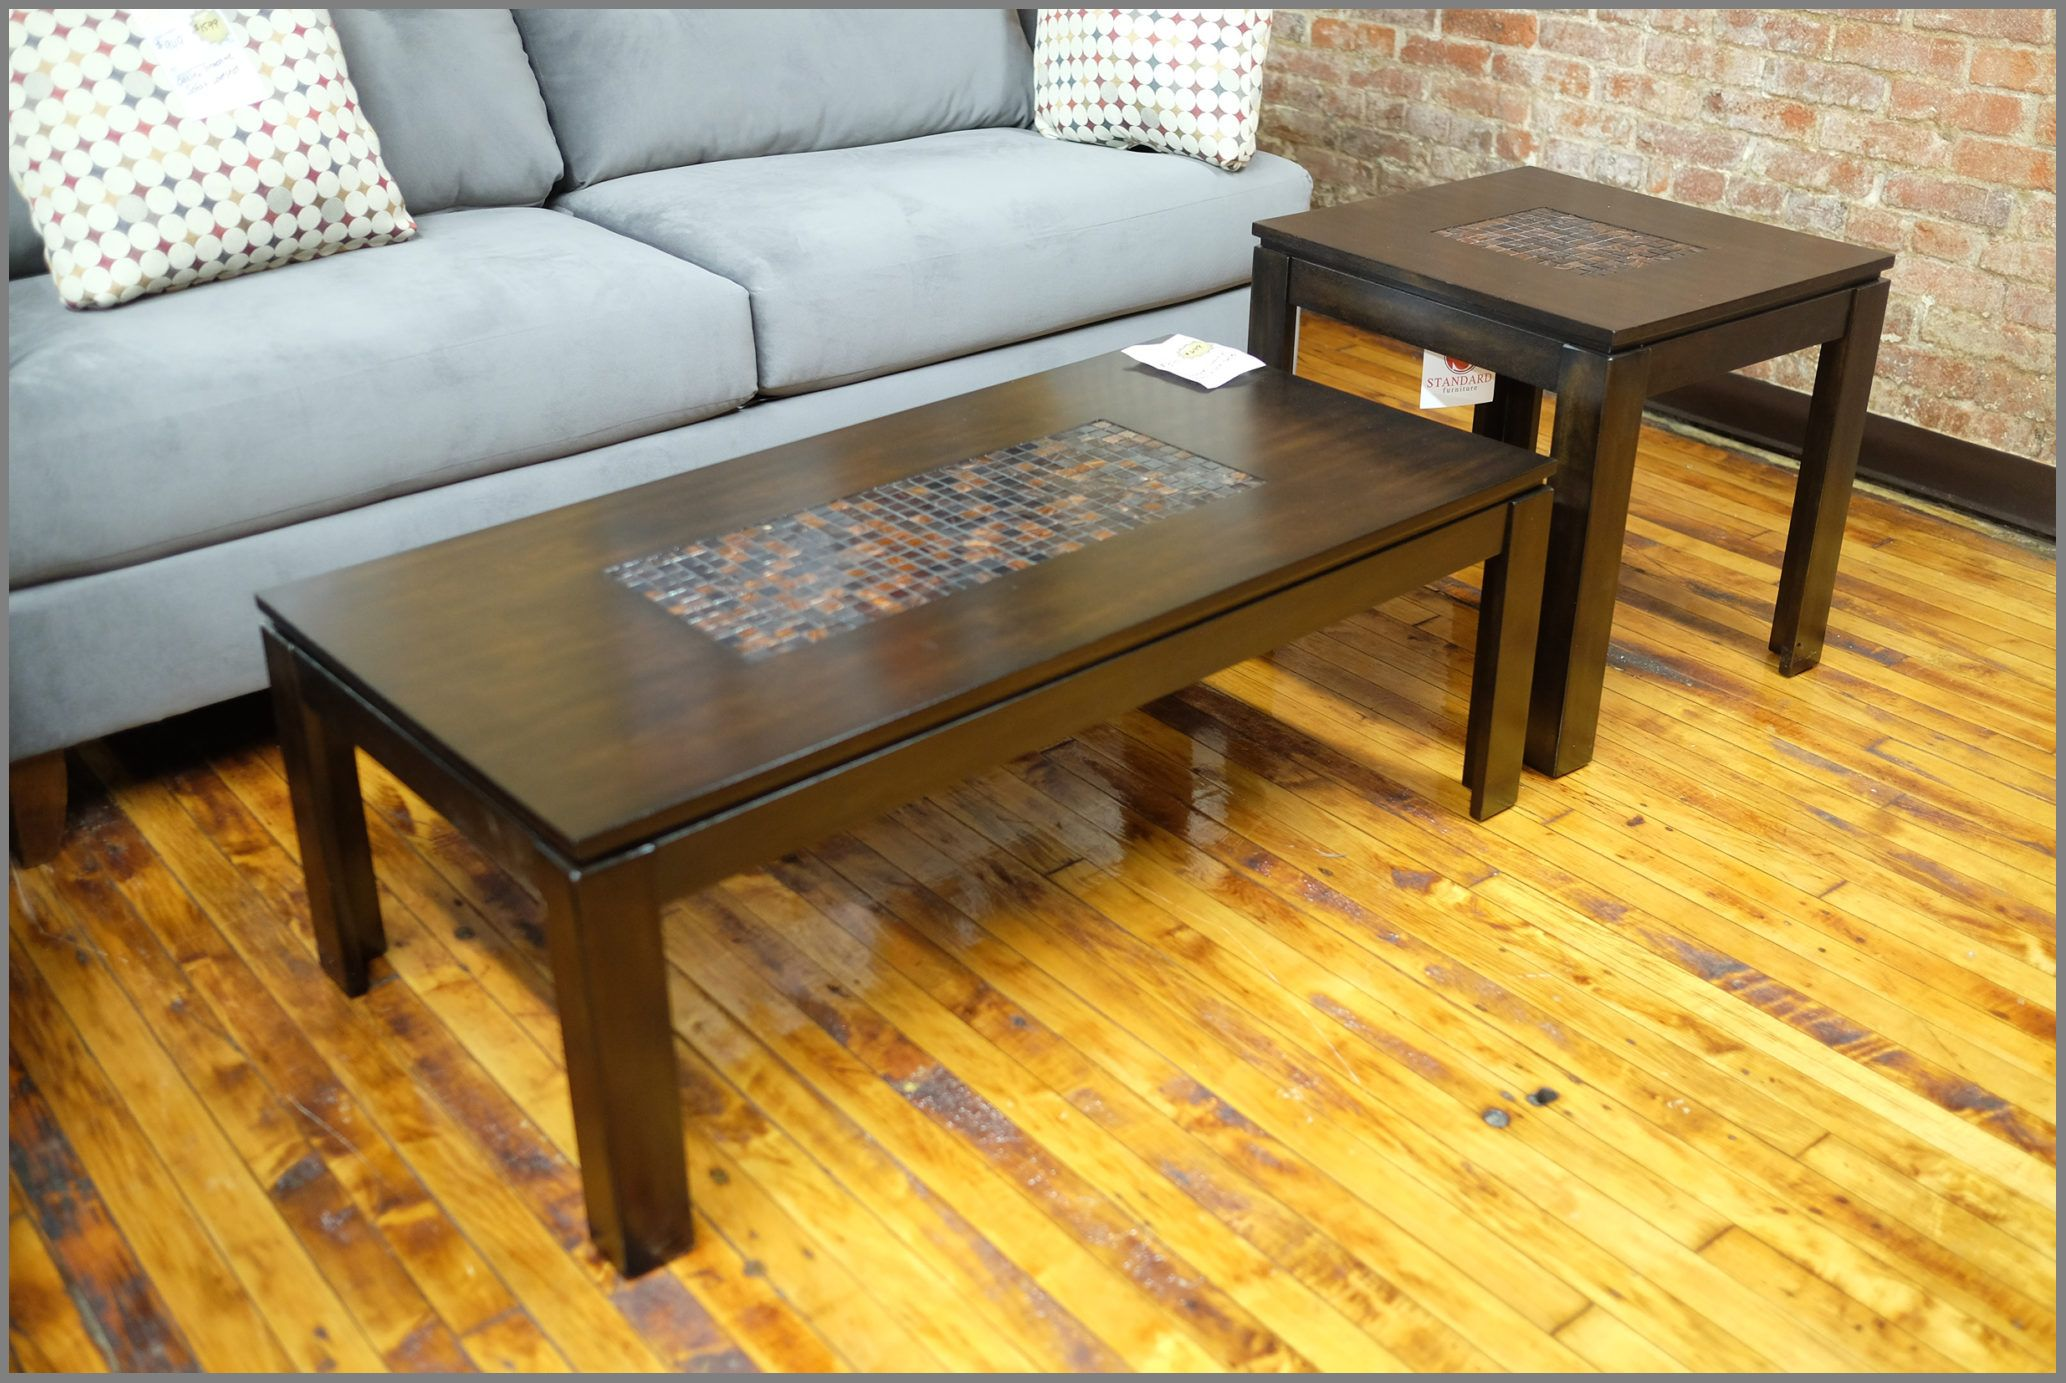 modern standard sparkle coffee end tables pittsburgh furniture used and for floor lamps that light room black pipe desk plans pallet outdoor ideas ashley willow grove universal